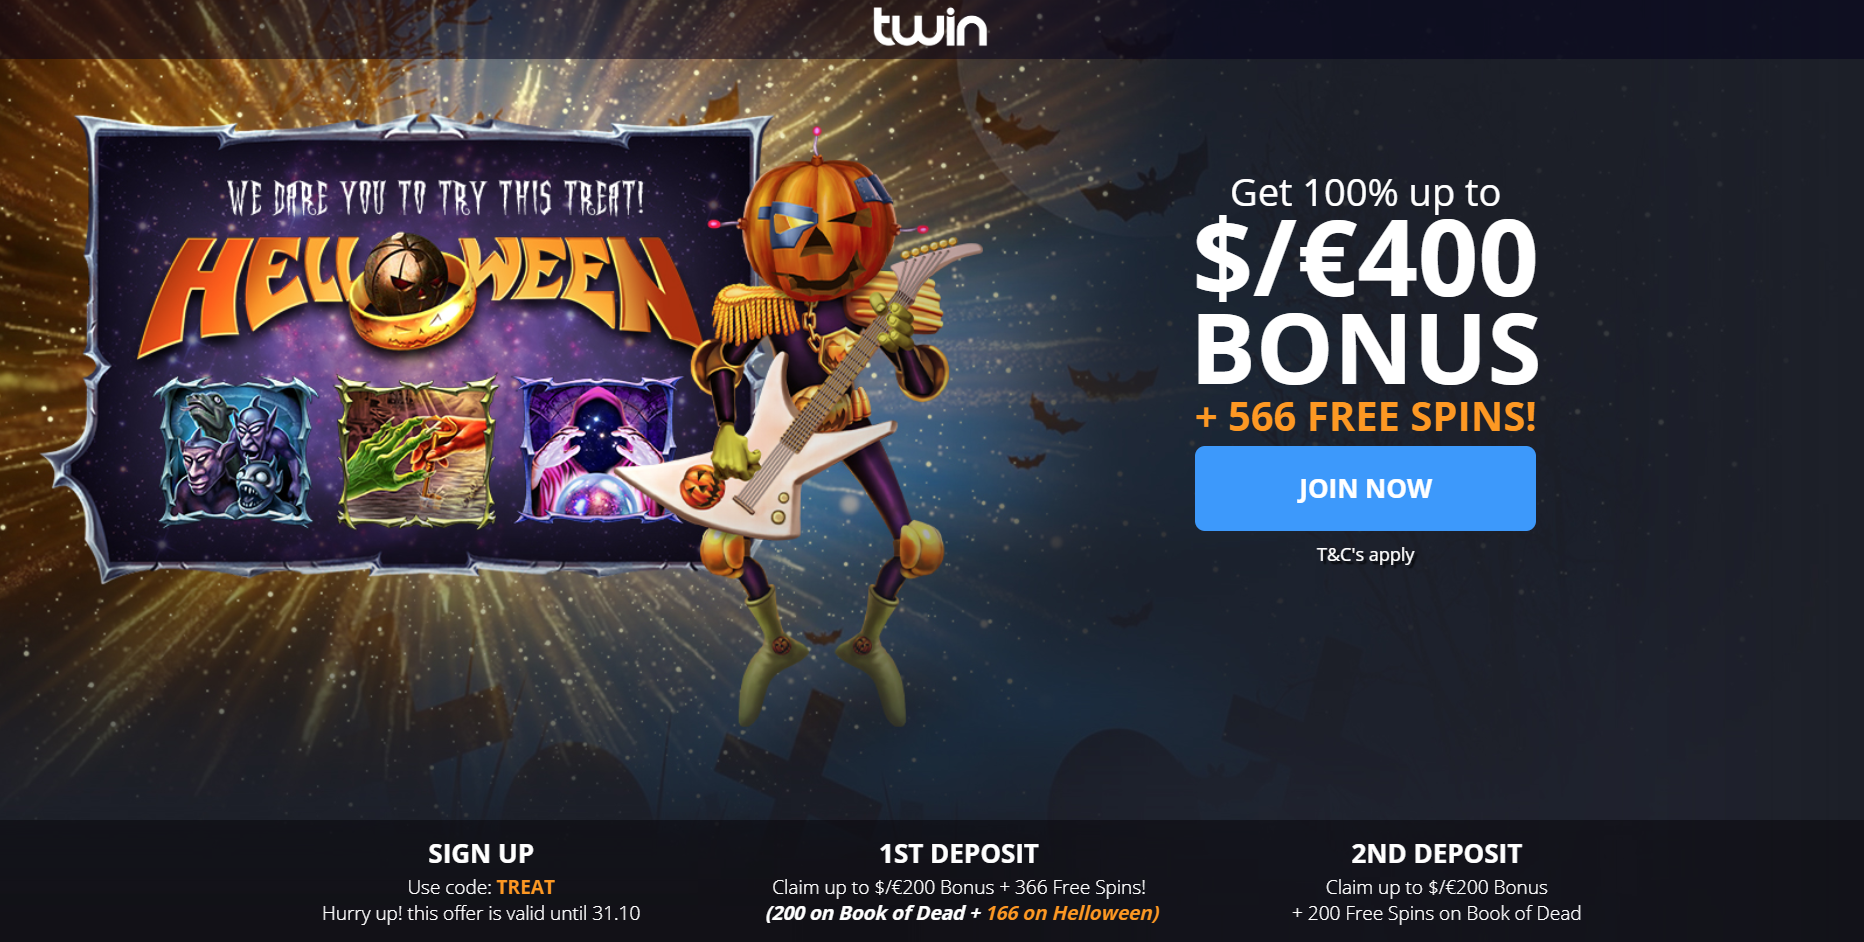 Twin Freespins